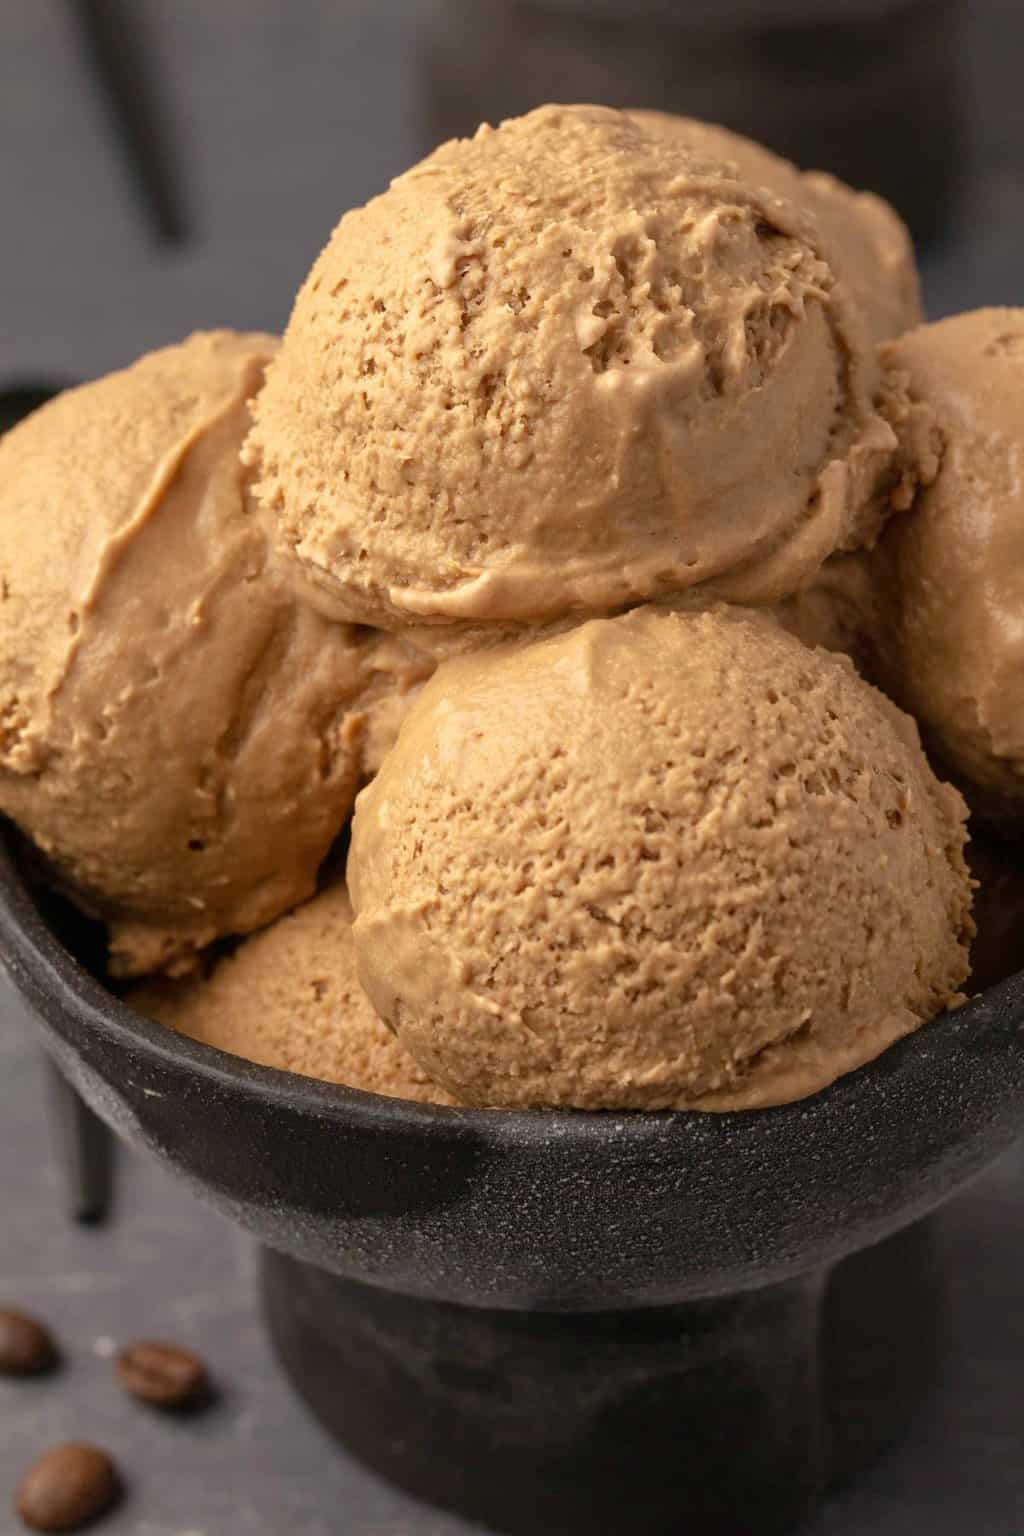 Vegan coffee ice cream scoops in a black bowl.